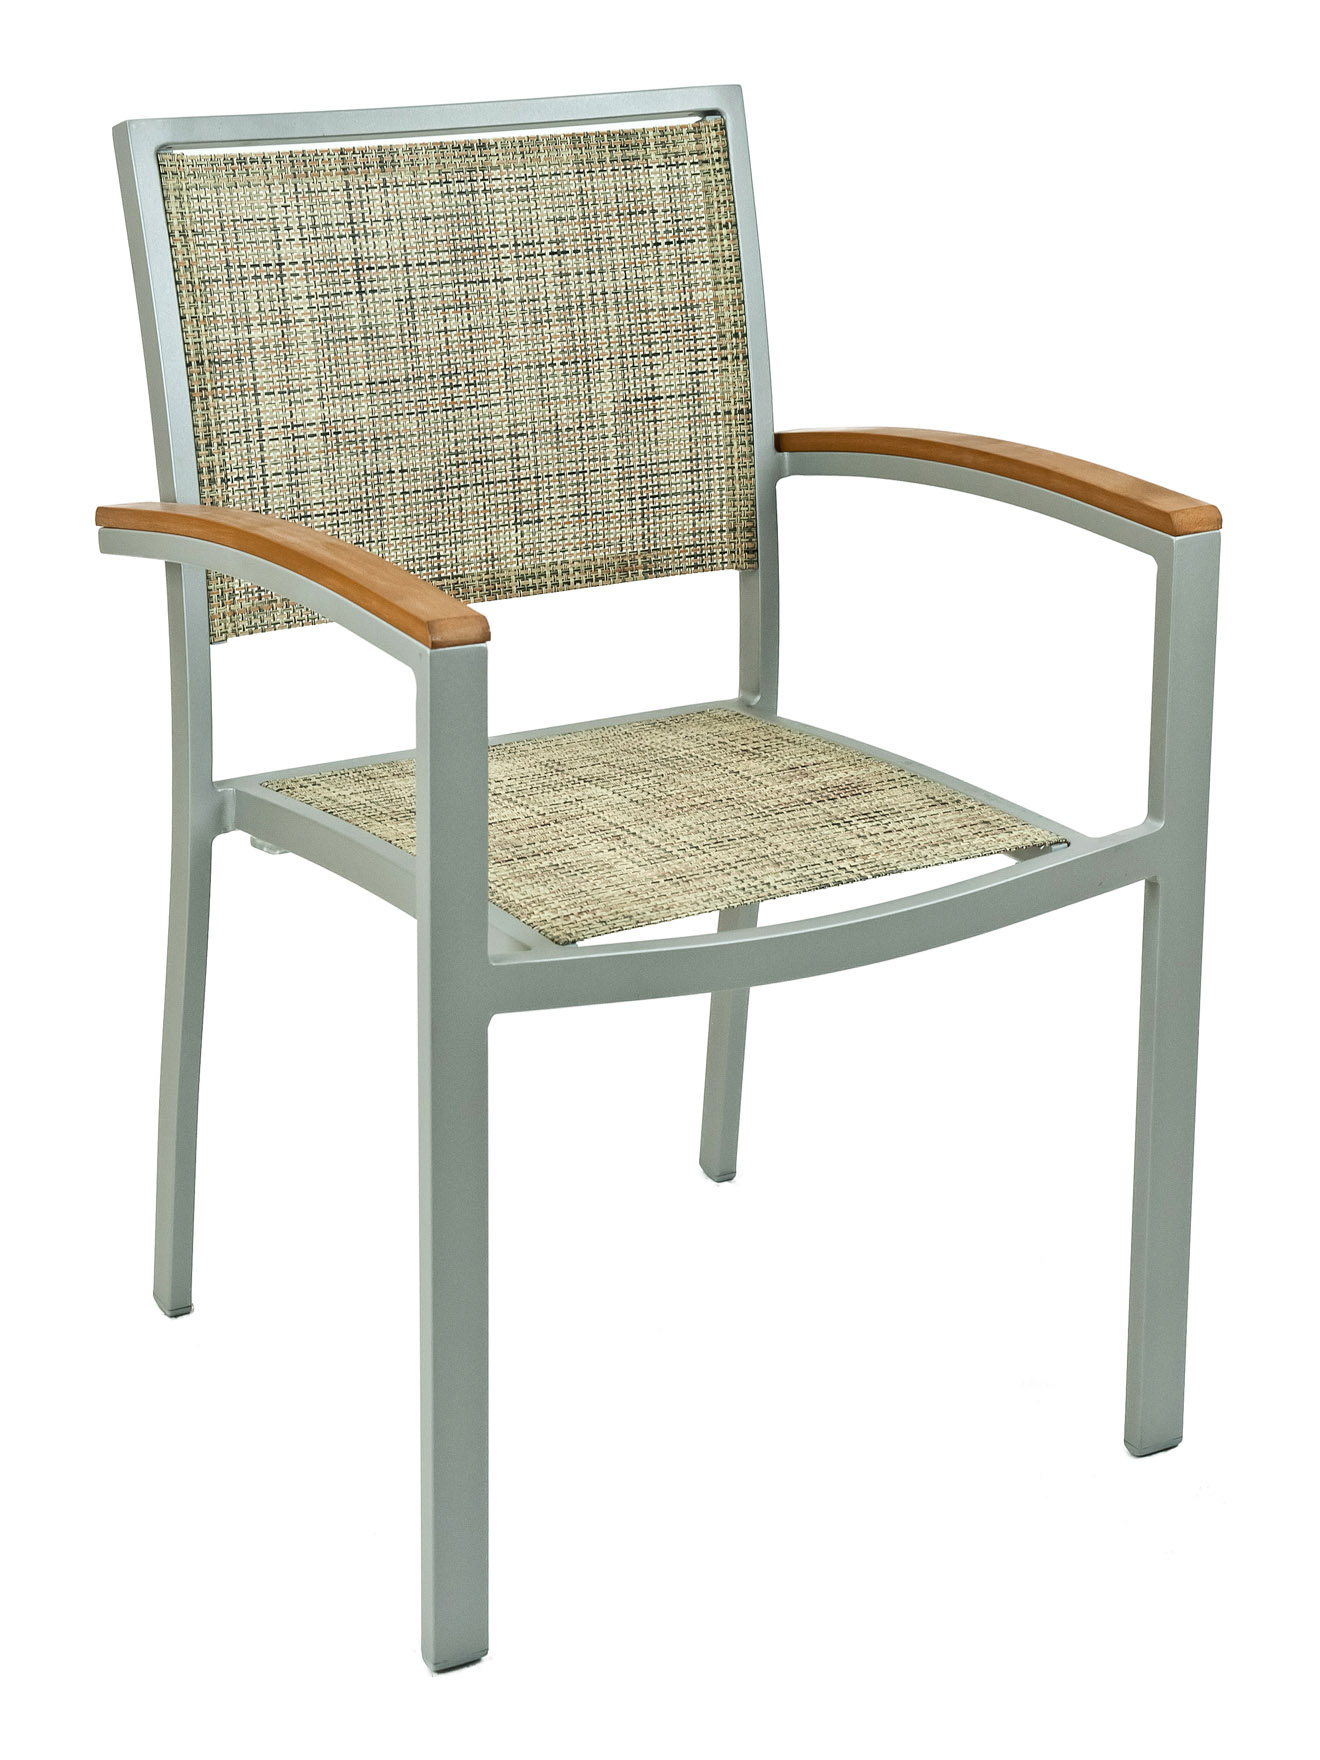 Mesh Fabric Aluminum Square Frame Arm Chair